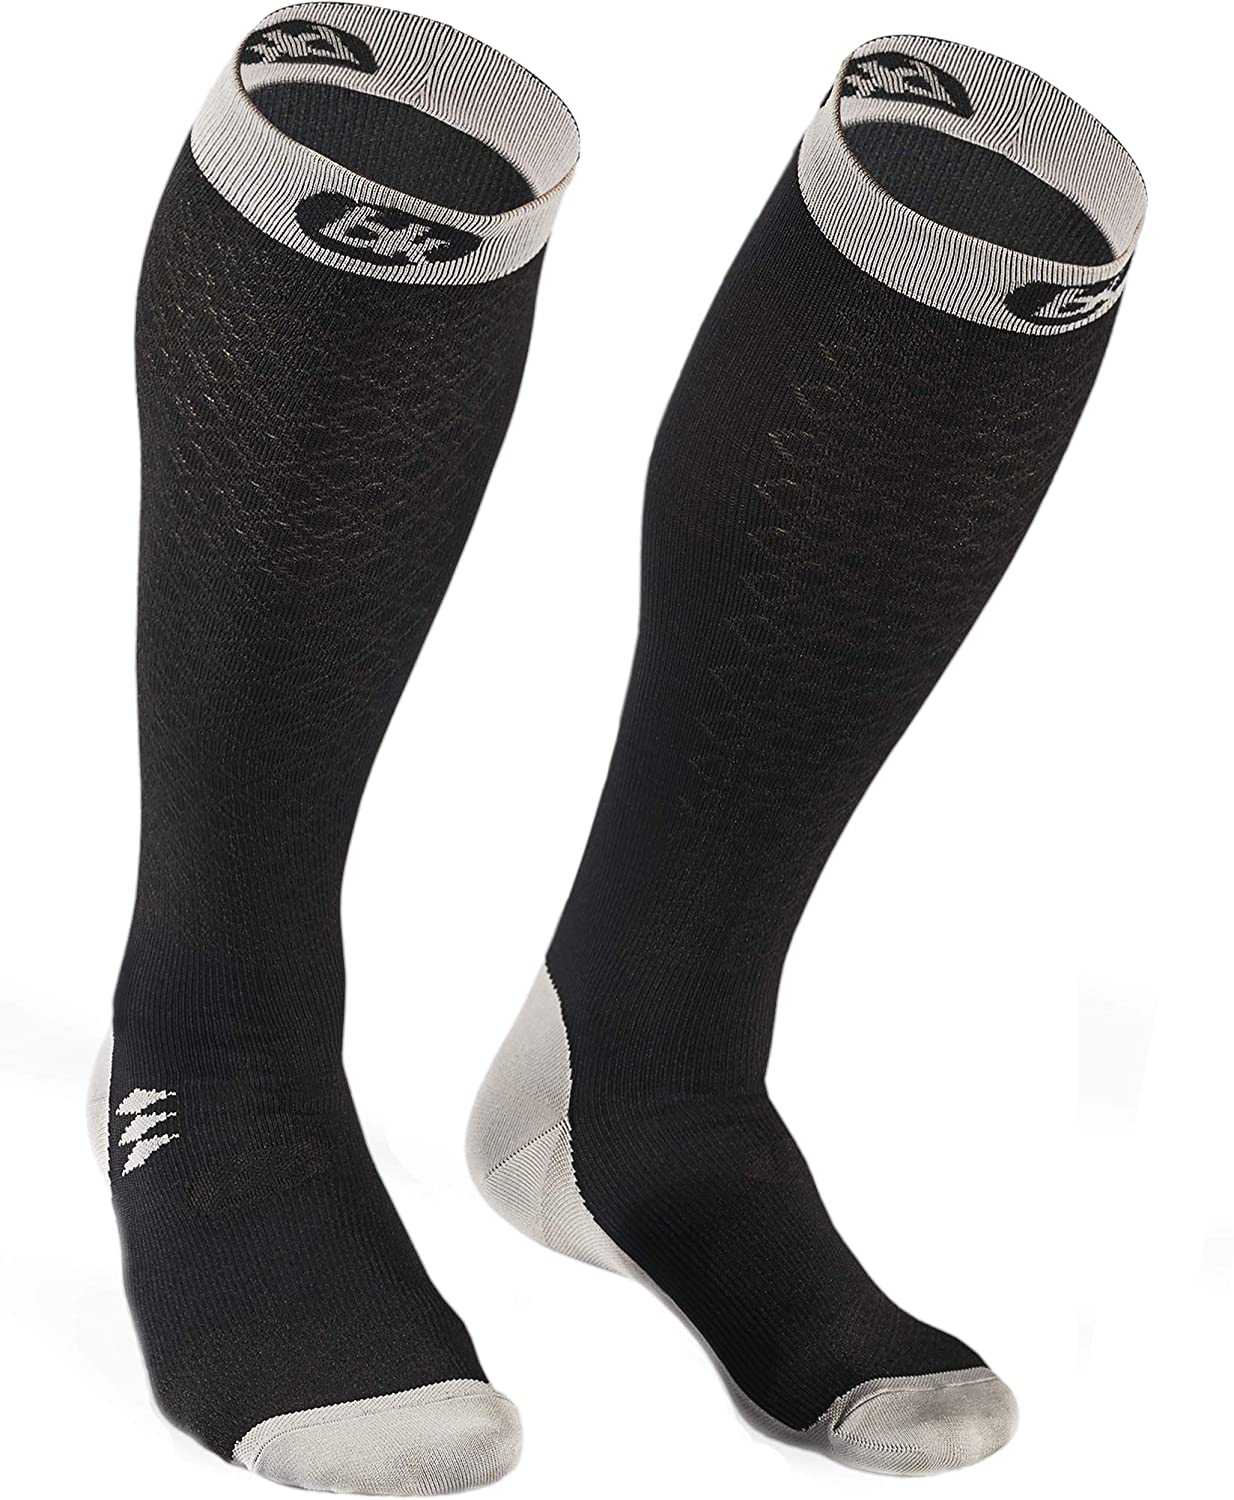 Bknees Compression Socks for Men and Women – Knee High – Athletic Socks for Running, Workout, Flying, Travel, Pregnancy – Improve Performance, Recovery Time and Blood Circulation (20-30 mmHg)